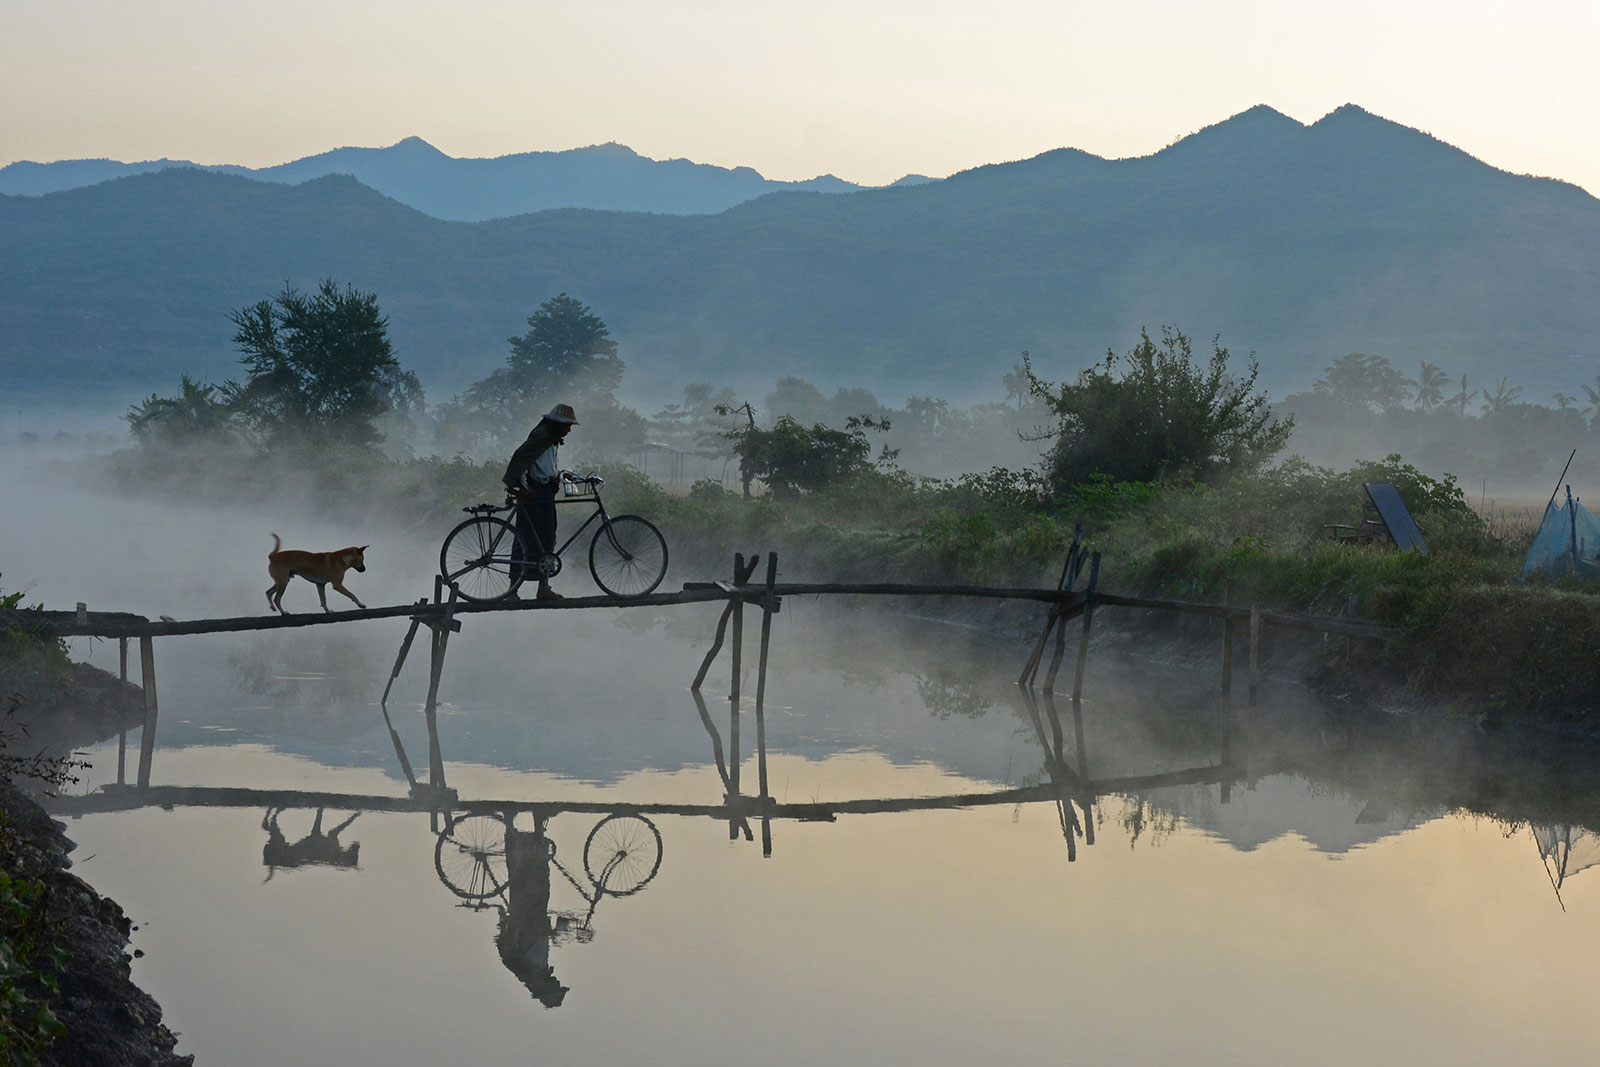 Title: Foggy morning | Author: Myo Min Kywe | Filter used: ND | Country: Myanmar